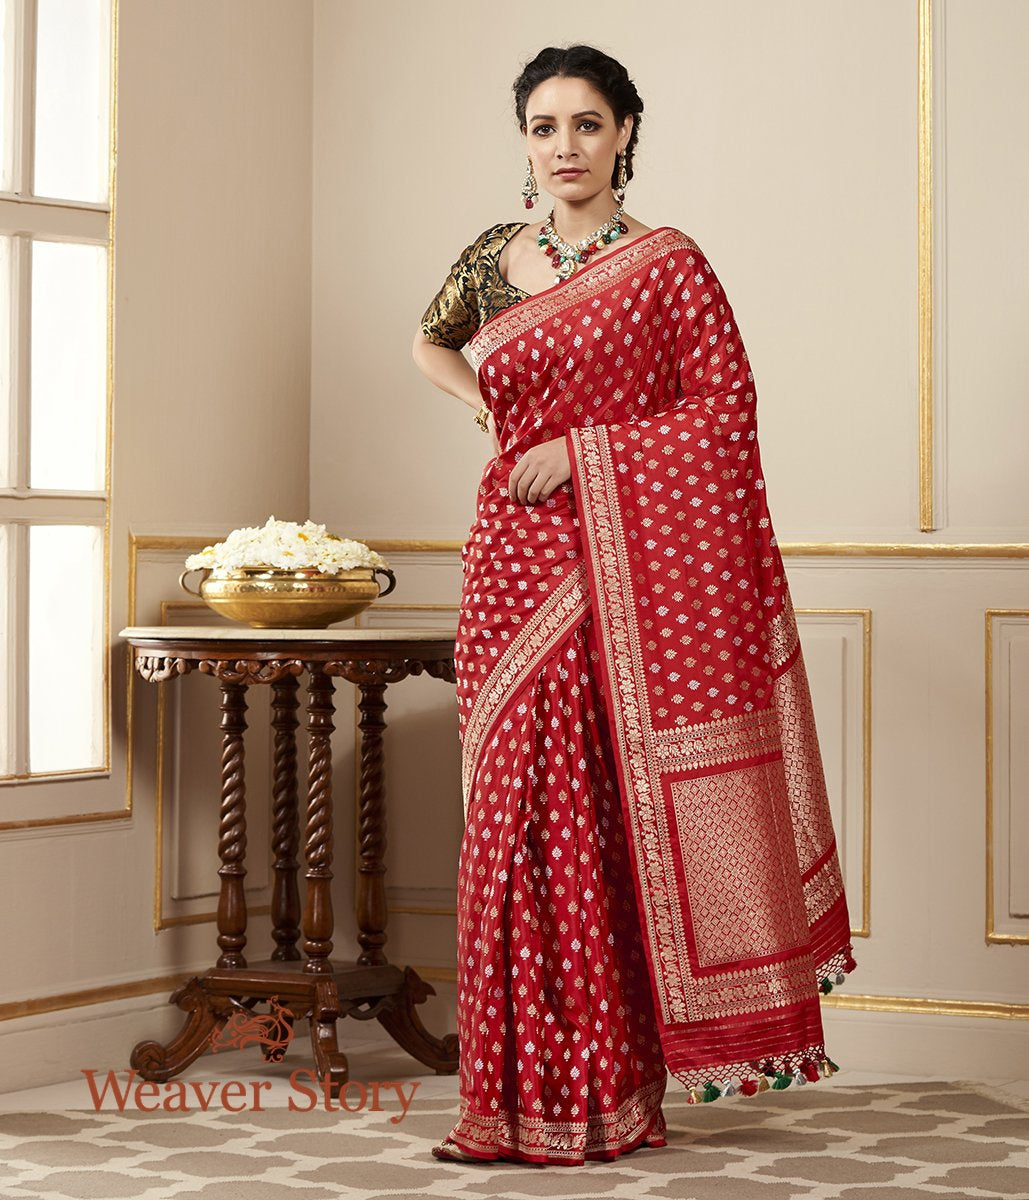 Handwoven Red Banarasi Saree with Kadhwa Booti Woven in Sona Rupa Zari